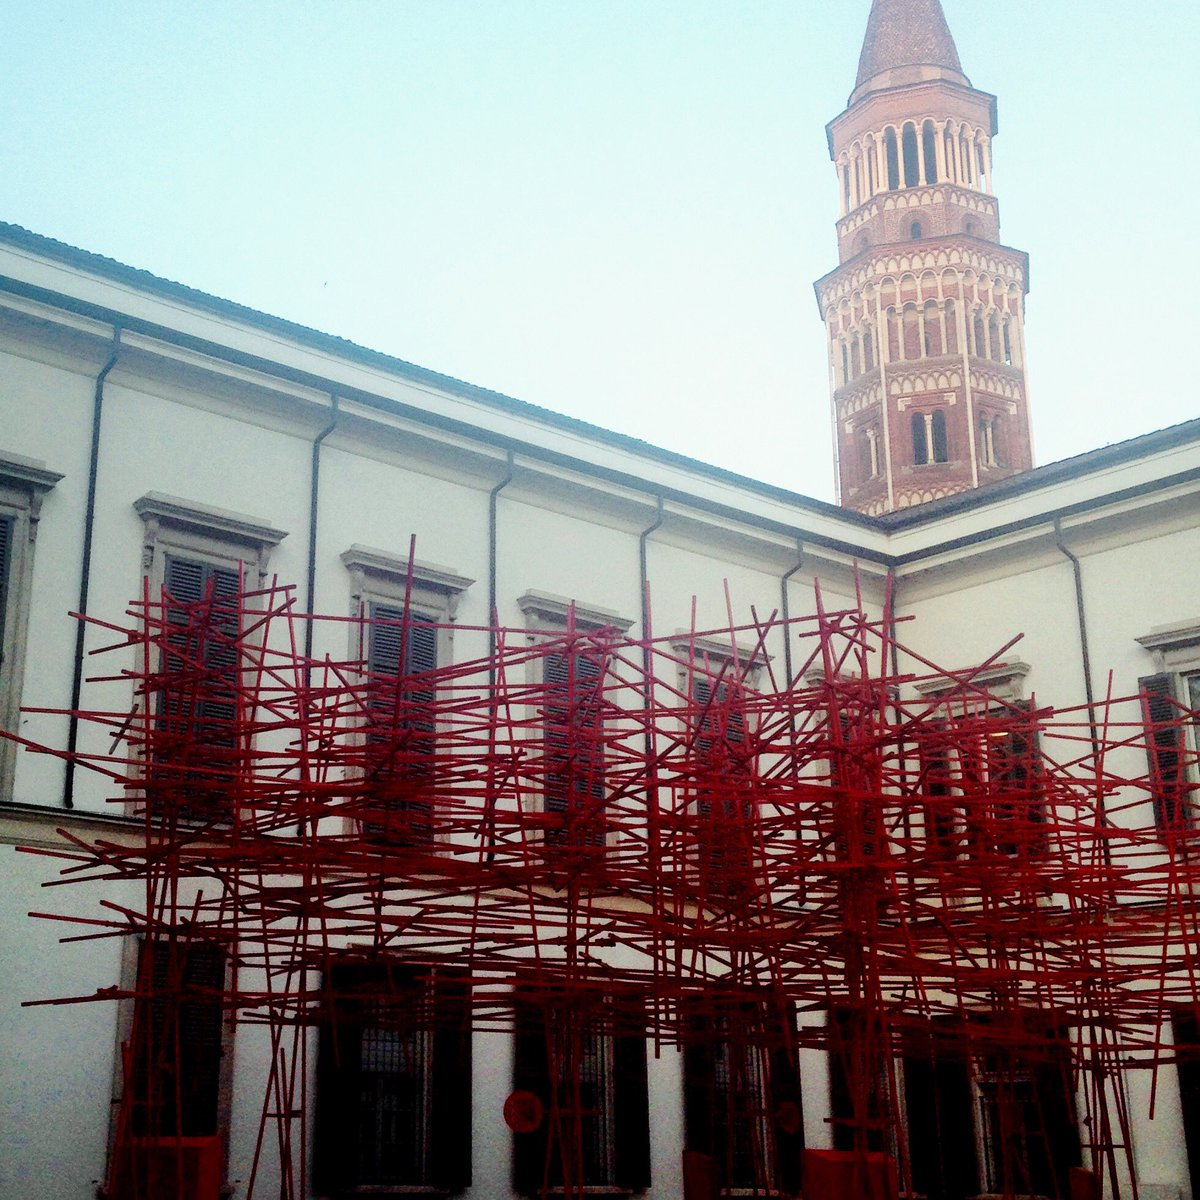 Waiting...#milano #palazzoreale #Vincent #Cassel #MonRoi #amiche #cosafalostudio #malemale #arianteo<br>http://pic.twitter.com/ejs5ncNPGY